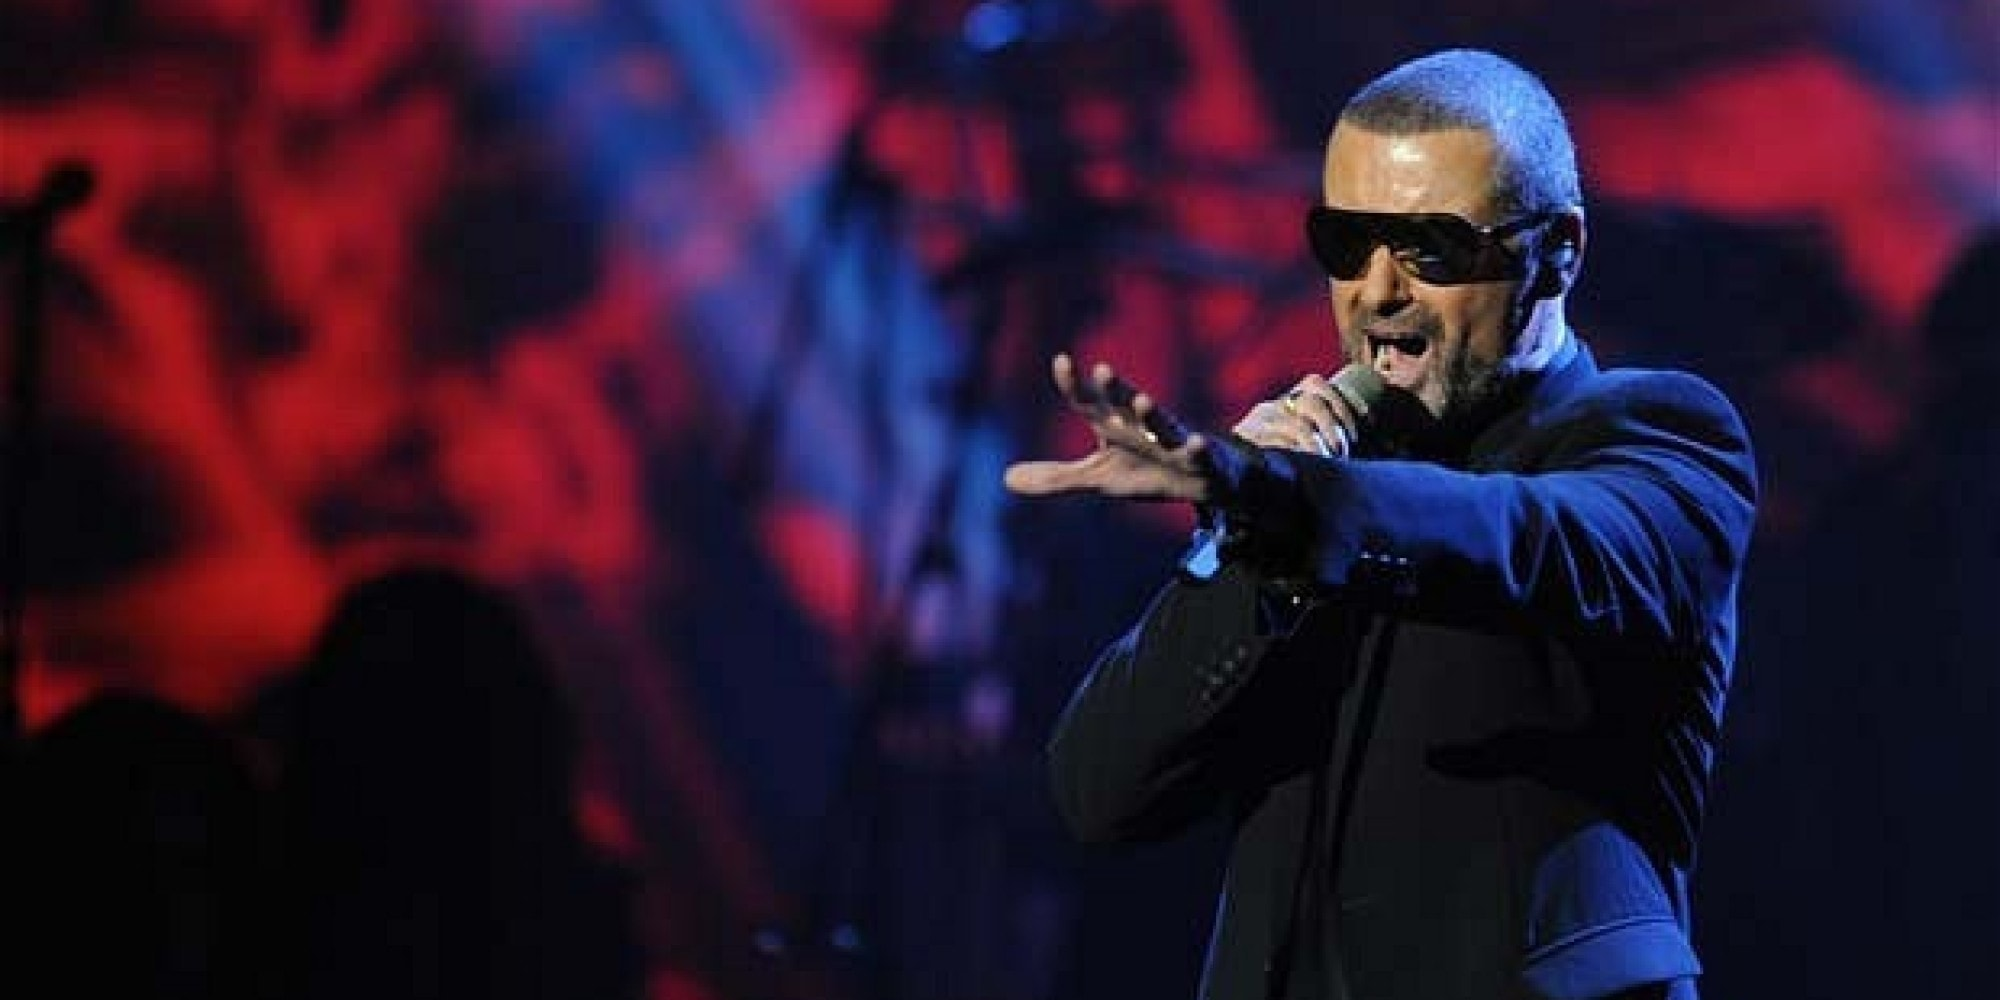 George Michael Shiny wallpapers